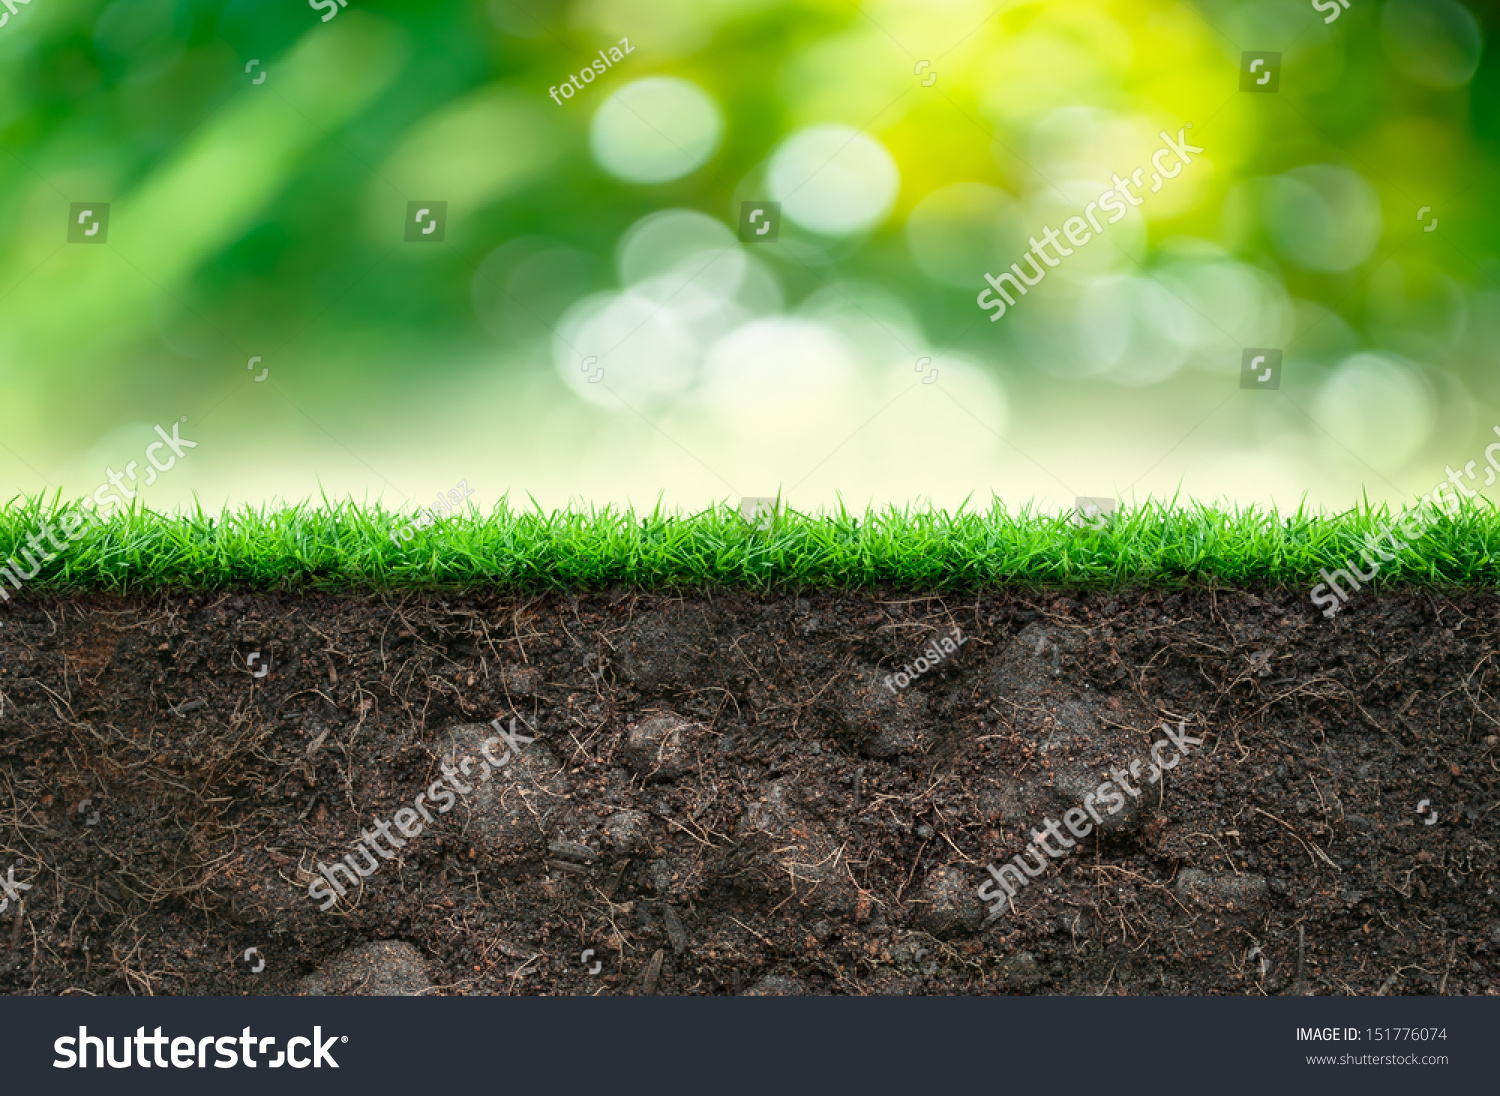 Soil green grass beautiful background stock illustration for Soil and green